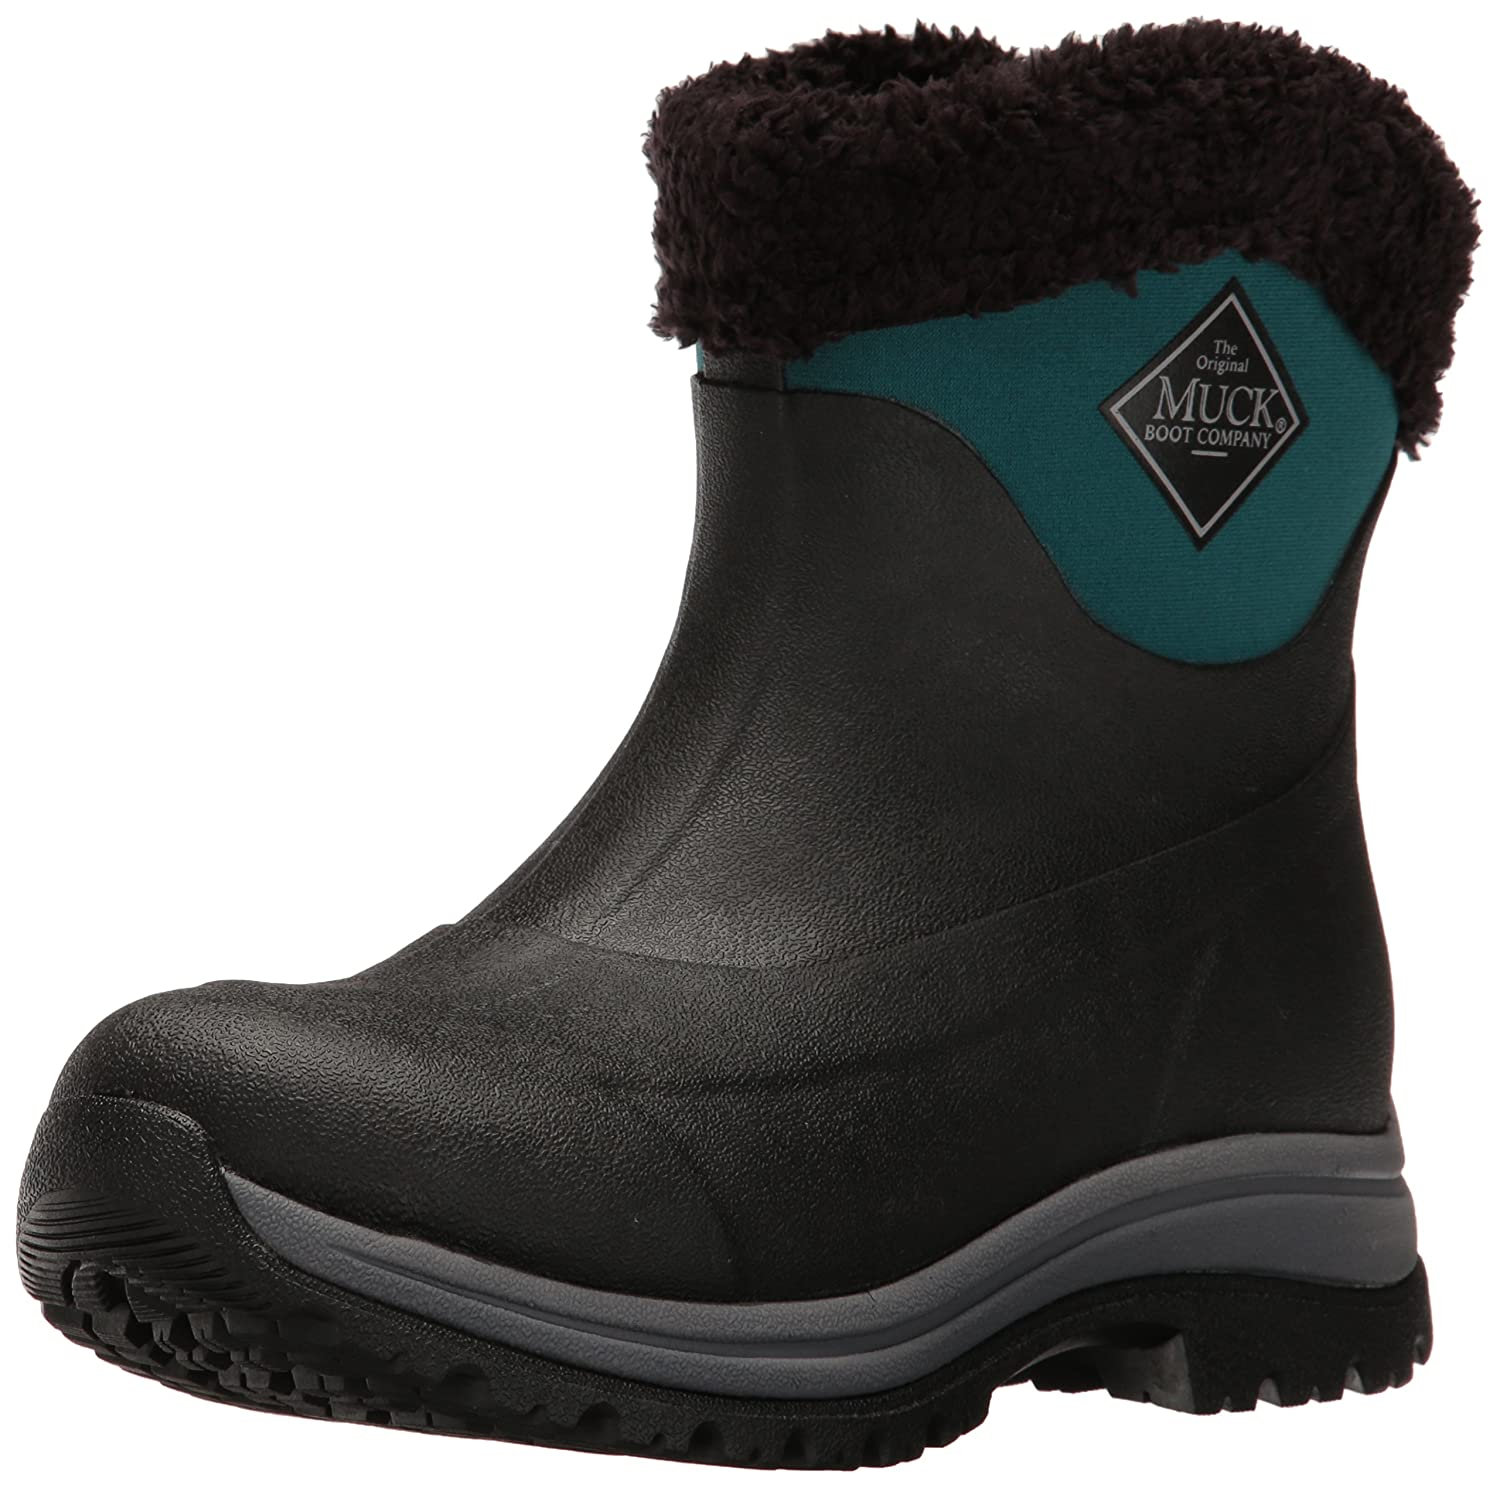 Muck Boot Arctic Apr/Ã/¨s Casual Slip-On Rubber Womens Winter Boot